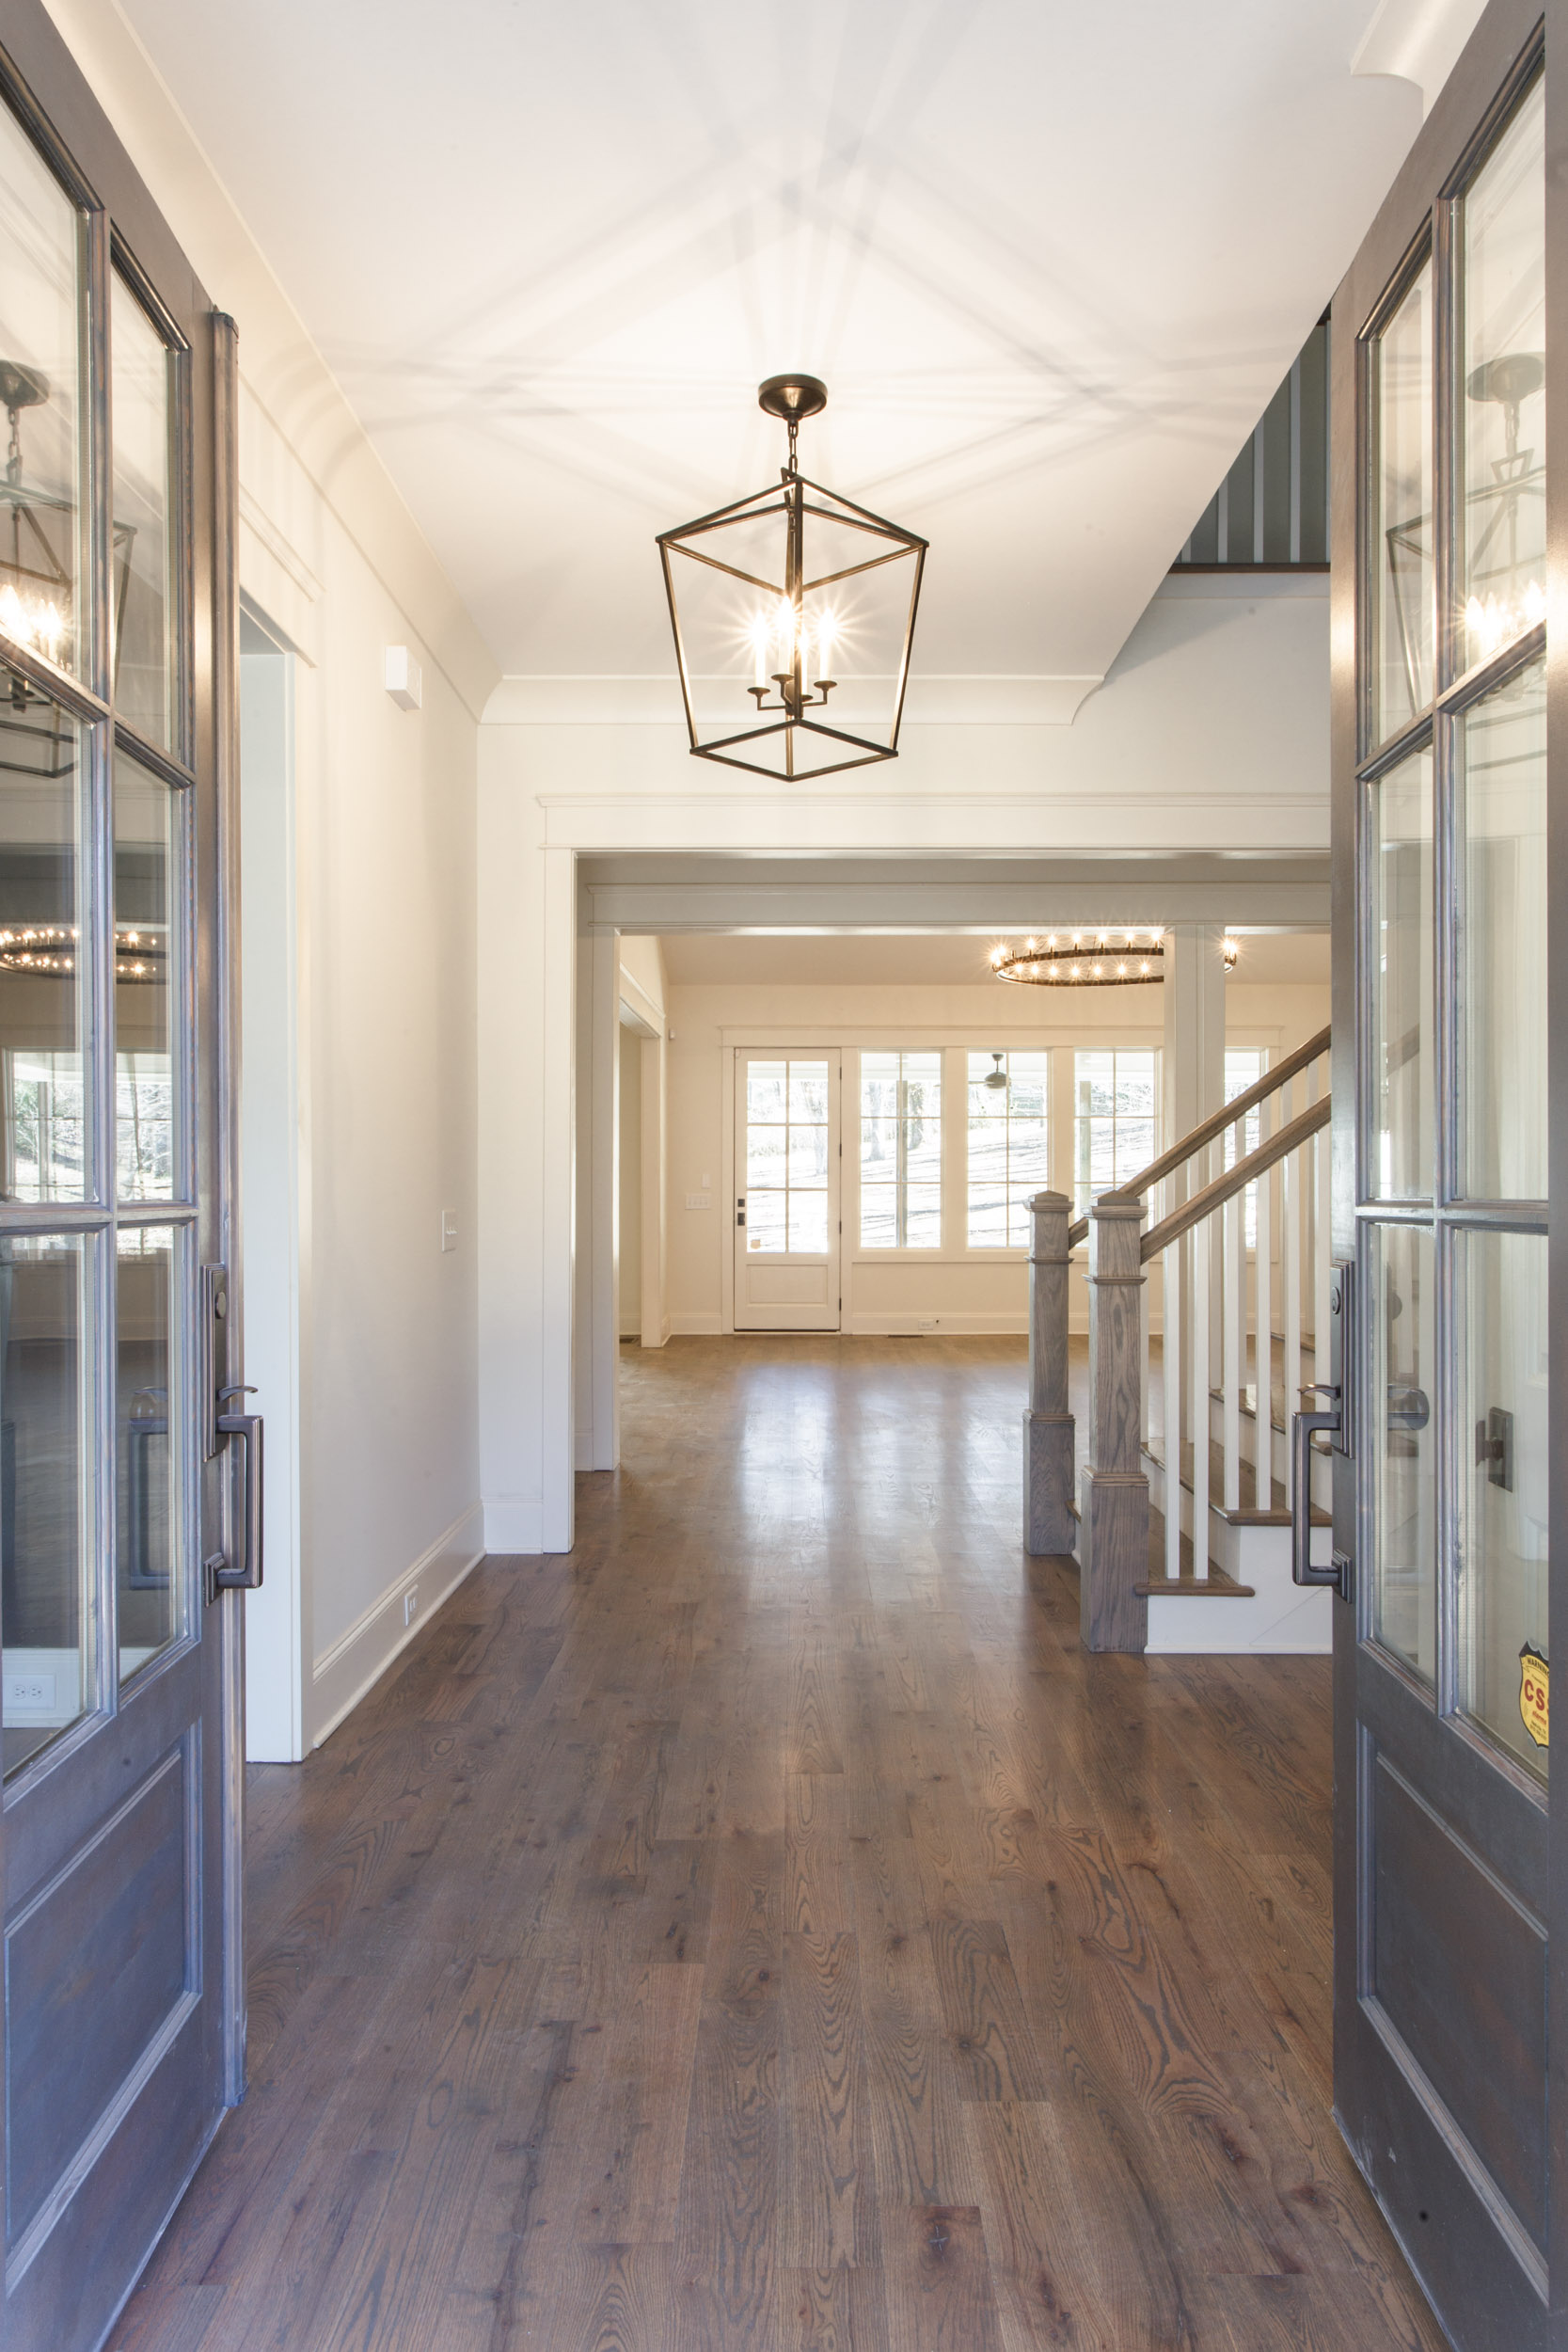 nashville-custom-home-belle-meade-real-estate-chandelier-development-4713.jpg